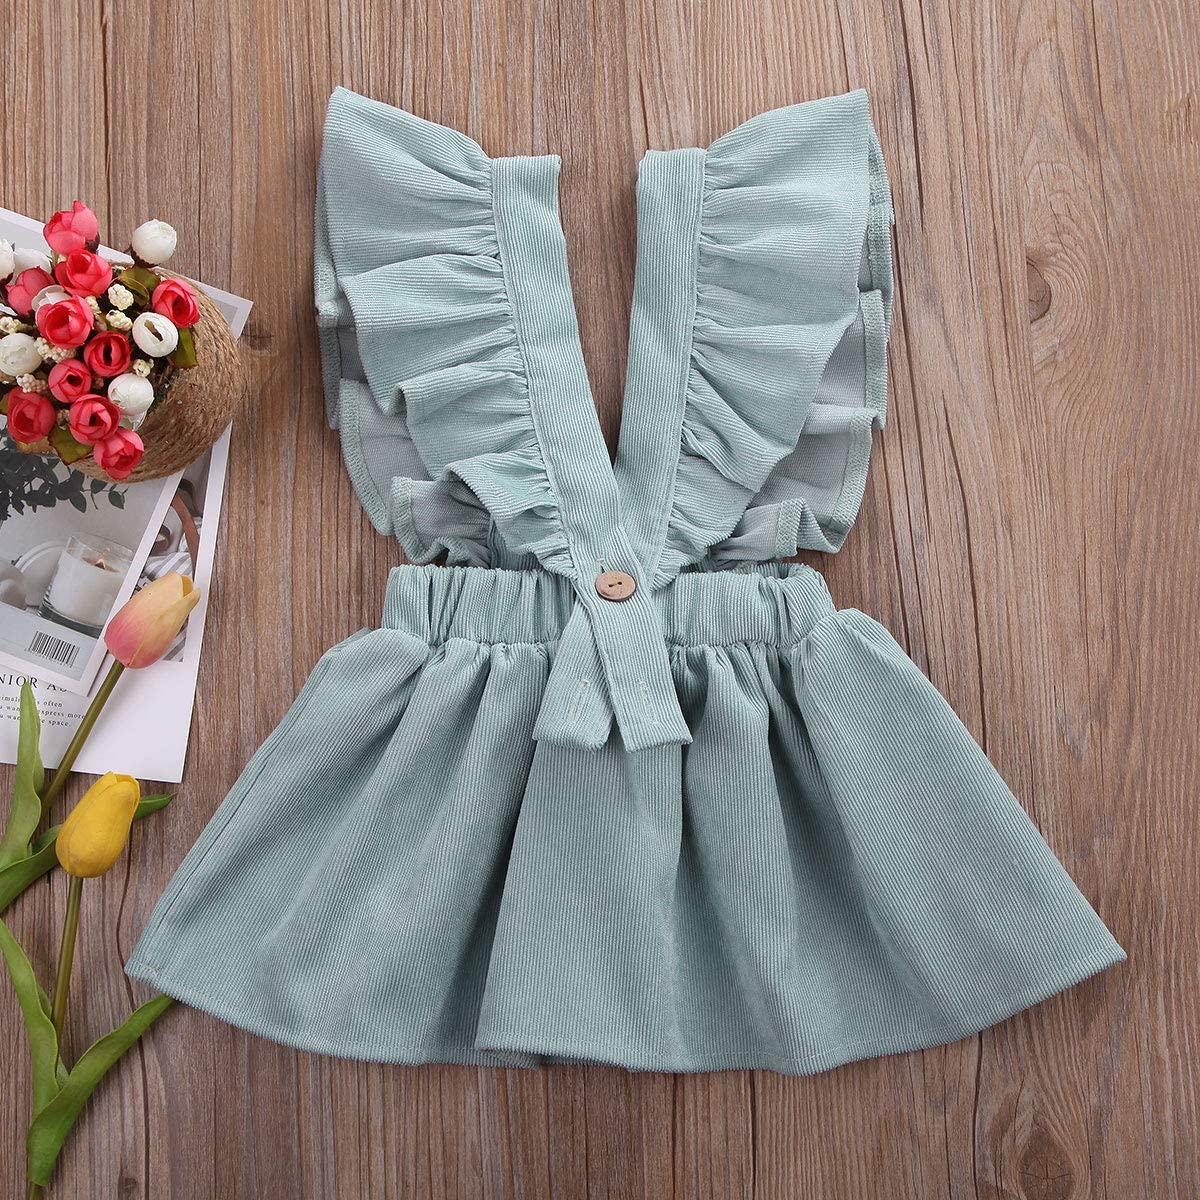 Douhoow Toddler Kids Baby Girls Suspender Skirt Ruffled Strap Sundress Overalls Outfit Clothes